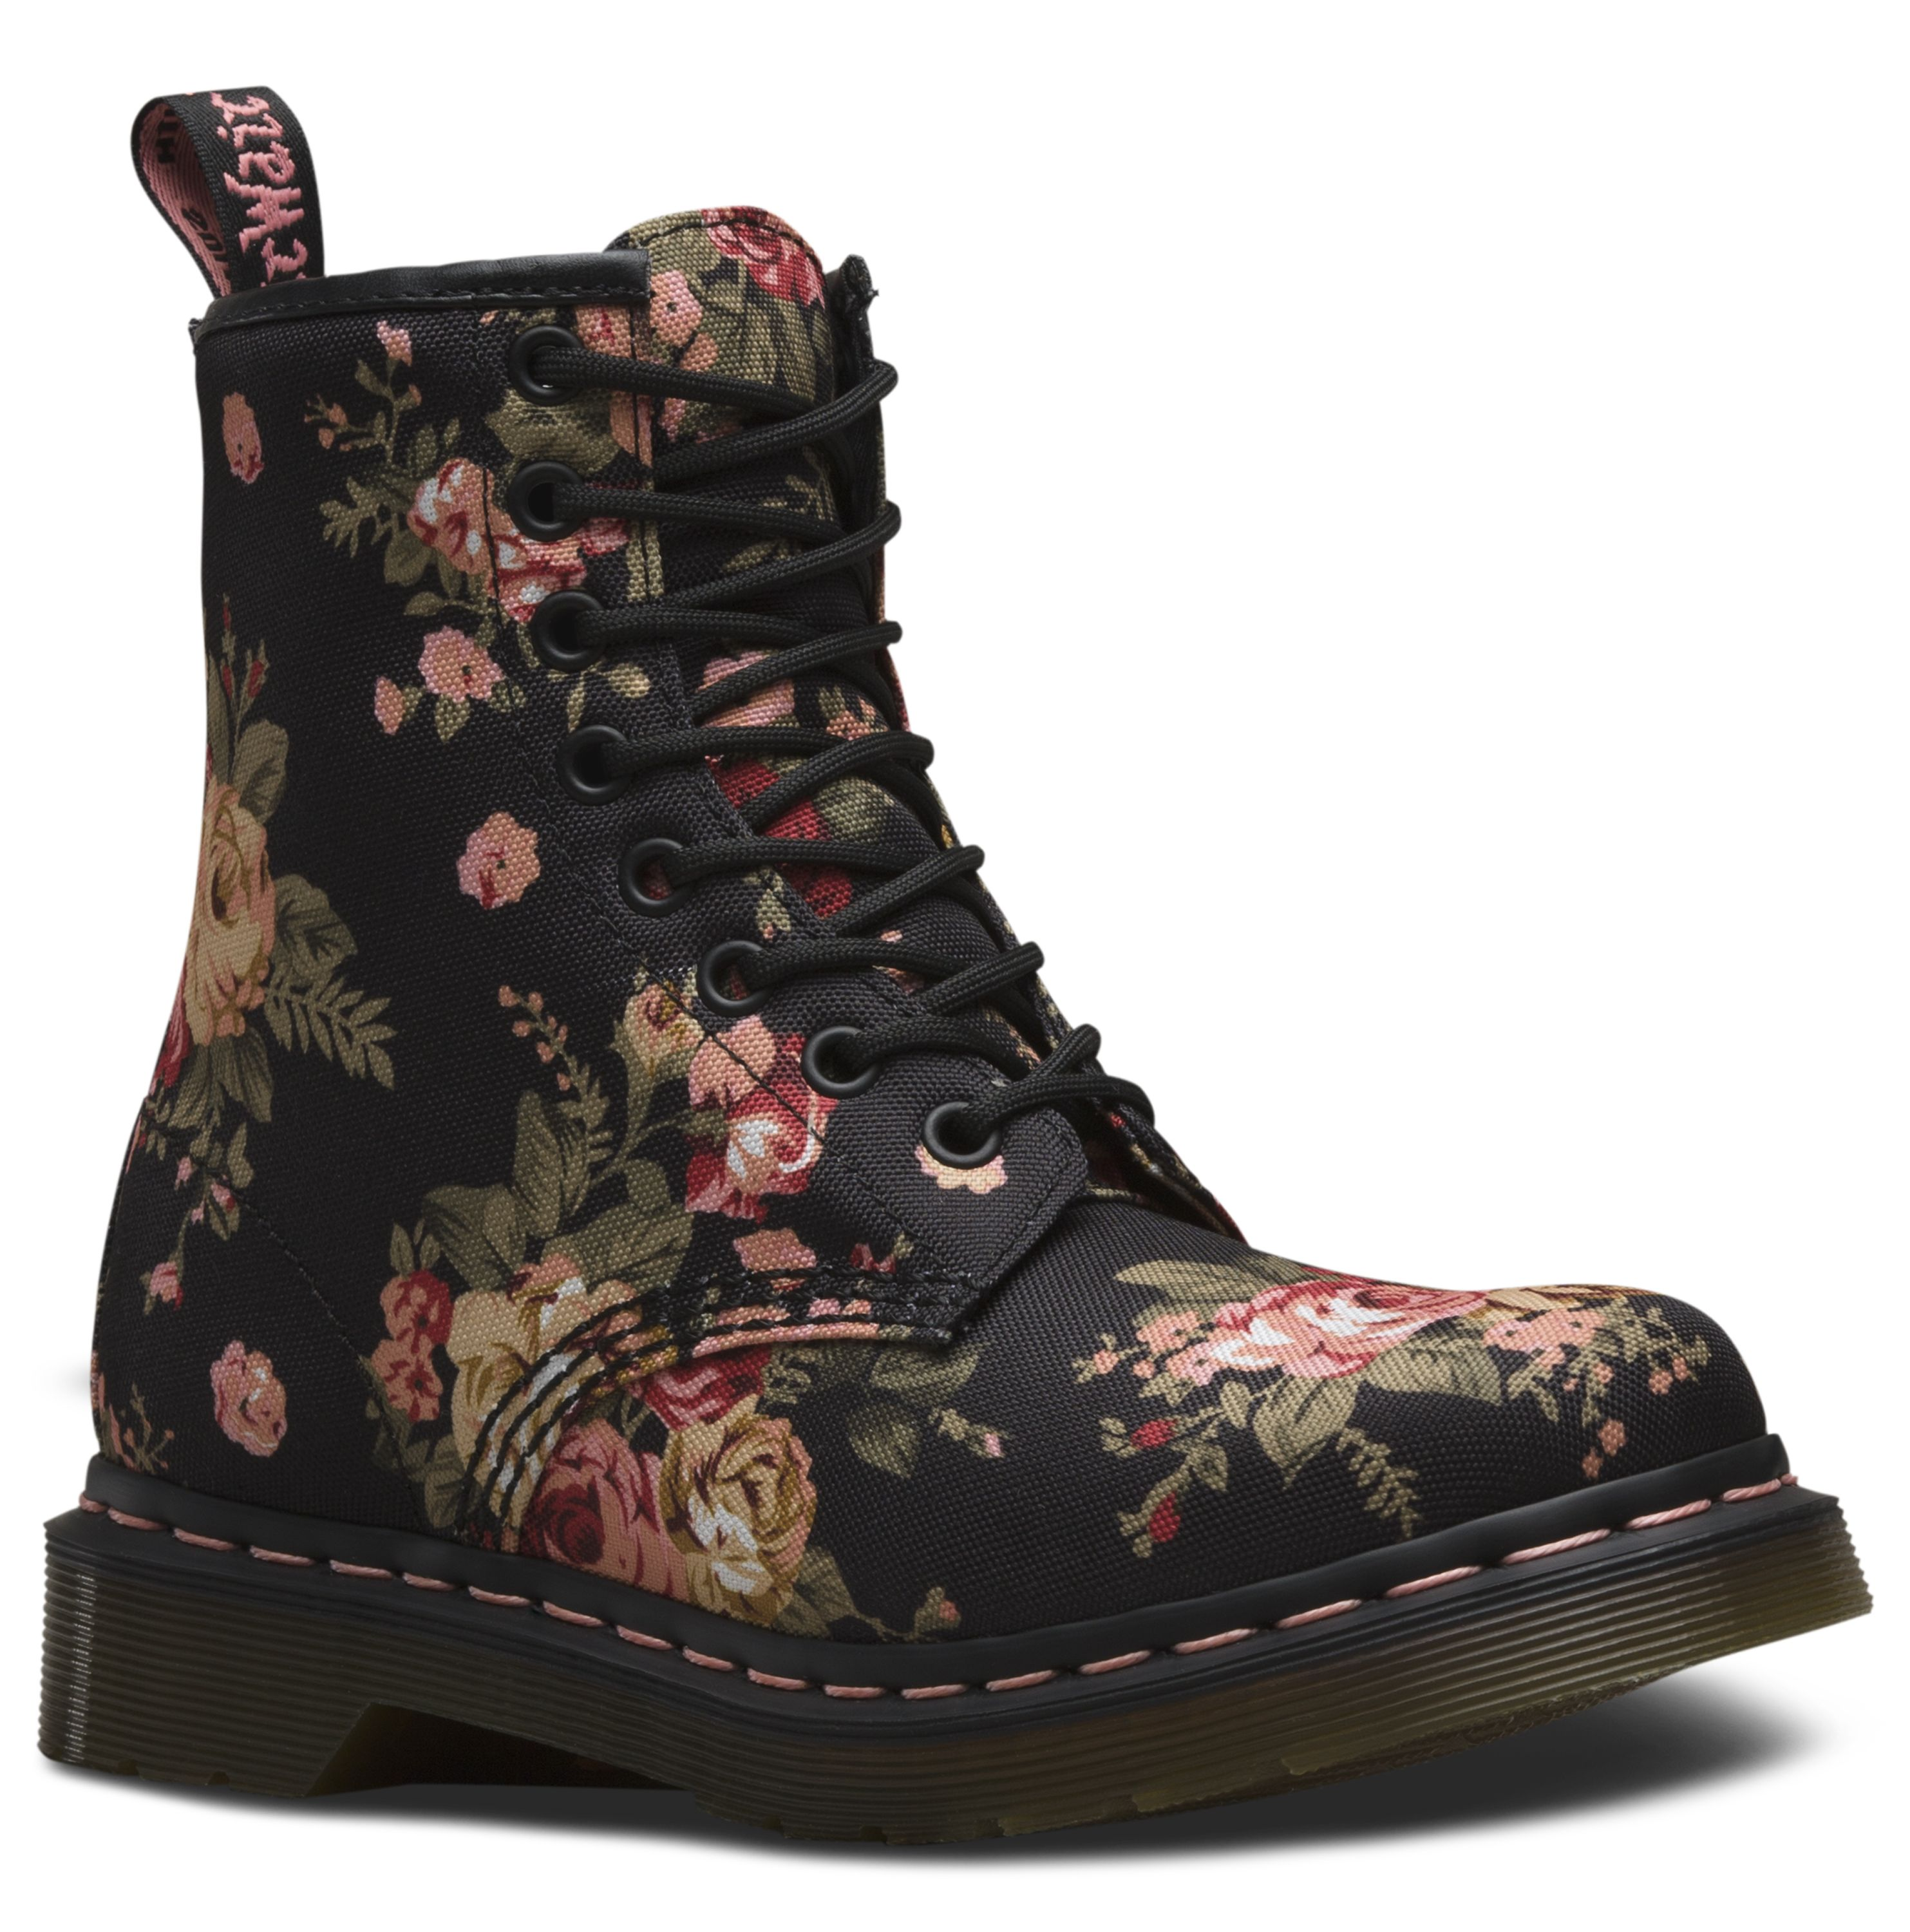 Save up to 75% off on Dr Martens Boots & Shoes! FREE Shipping and a % price guarantee. Choose from a huge selection of Doc Martens Boots and Shoes. Free Shipping. No Minimum. Advanced Search. Search mobzik.tk ShoeFan Rewards. Your Shopping Cart has. 0. items. Checkout.